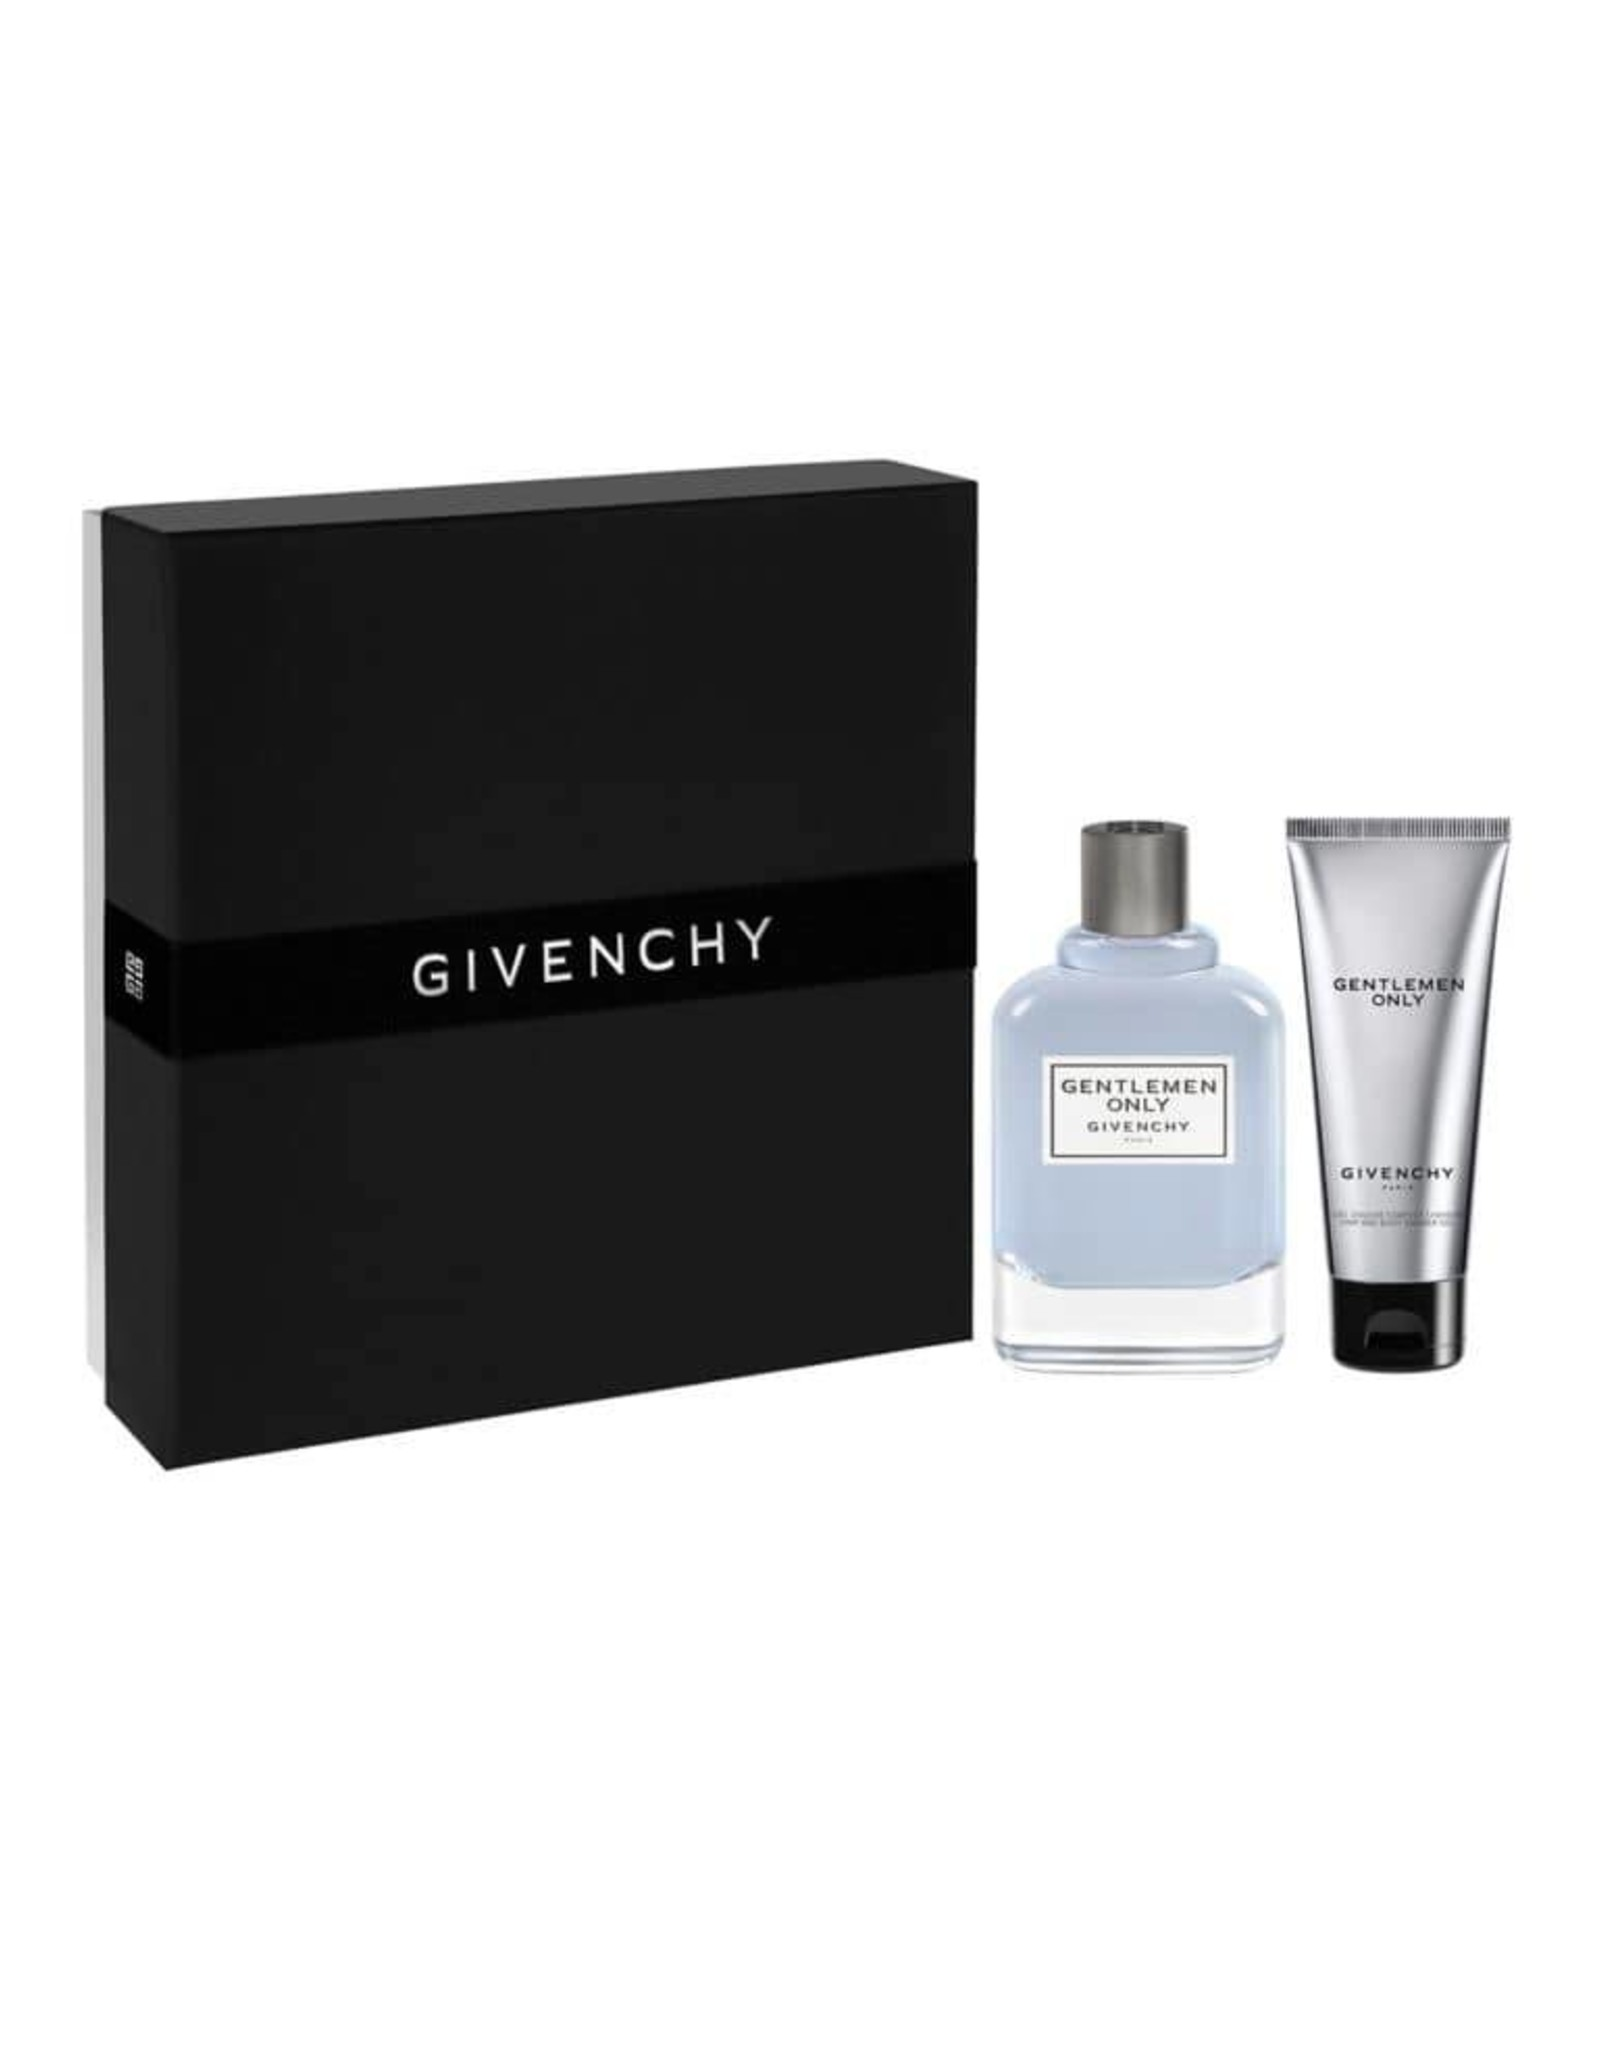 GIVENCHY GIVENCHY GENTLEMEN ONLY 2pcs Set